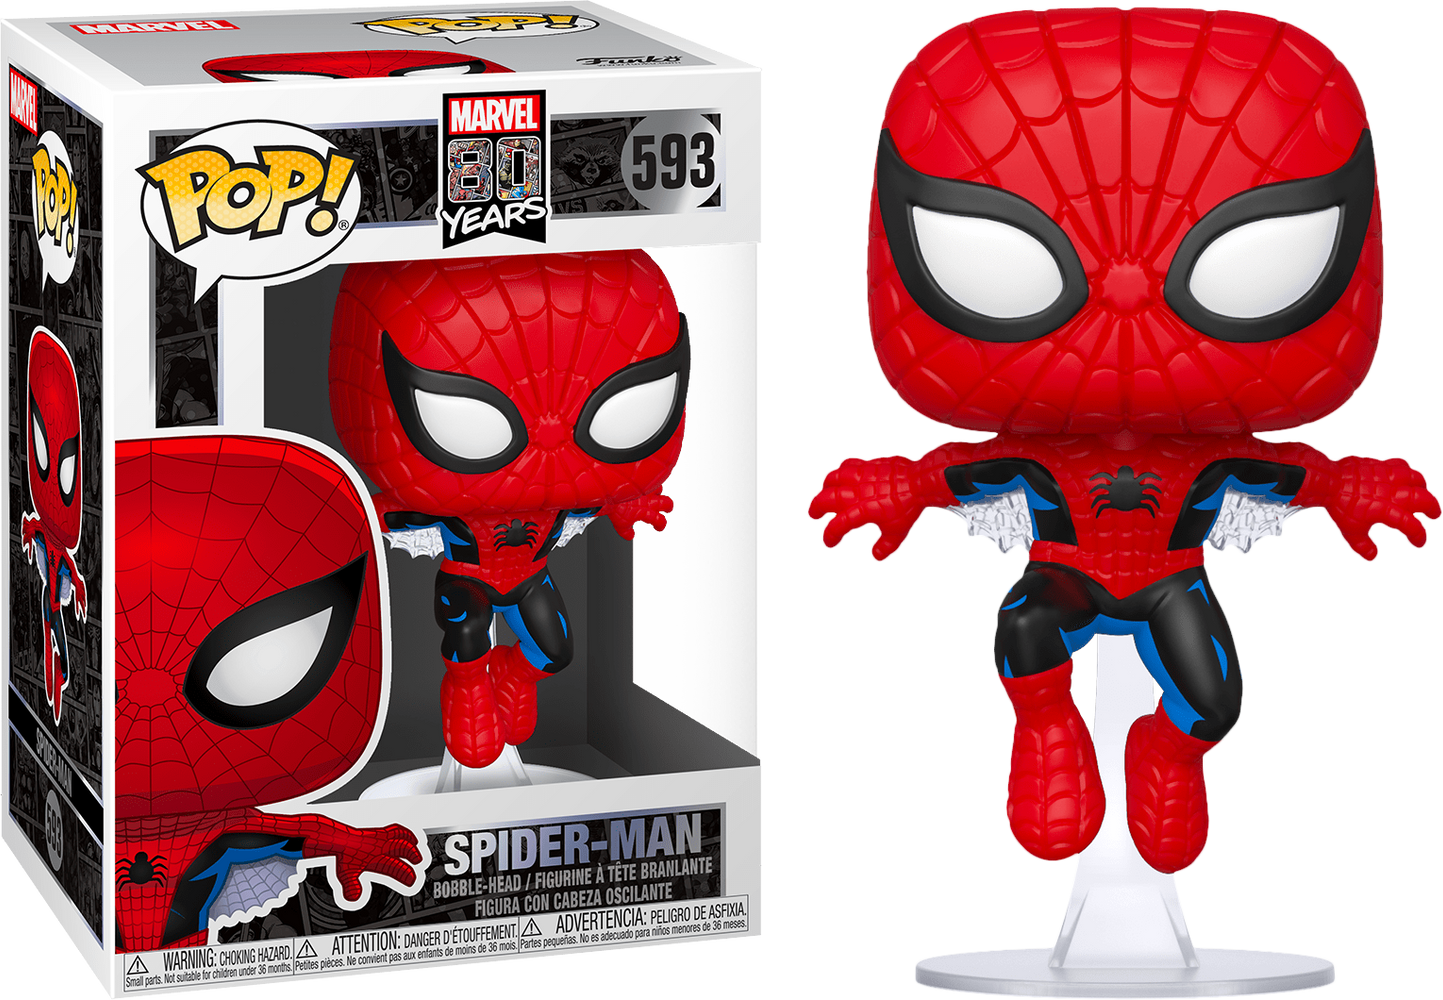 Spider-Man: 80th Anniversary Pop! Vinyl Figure